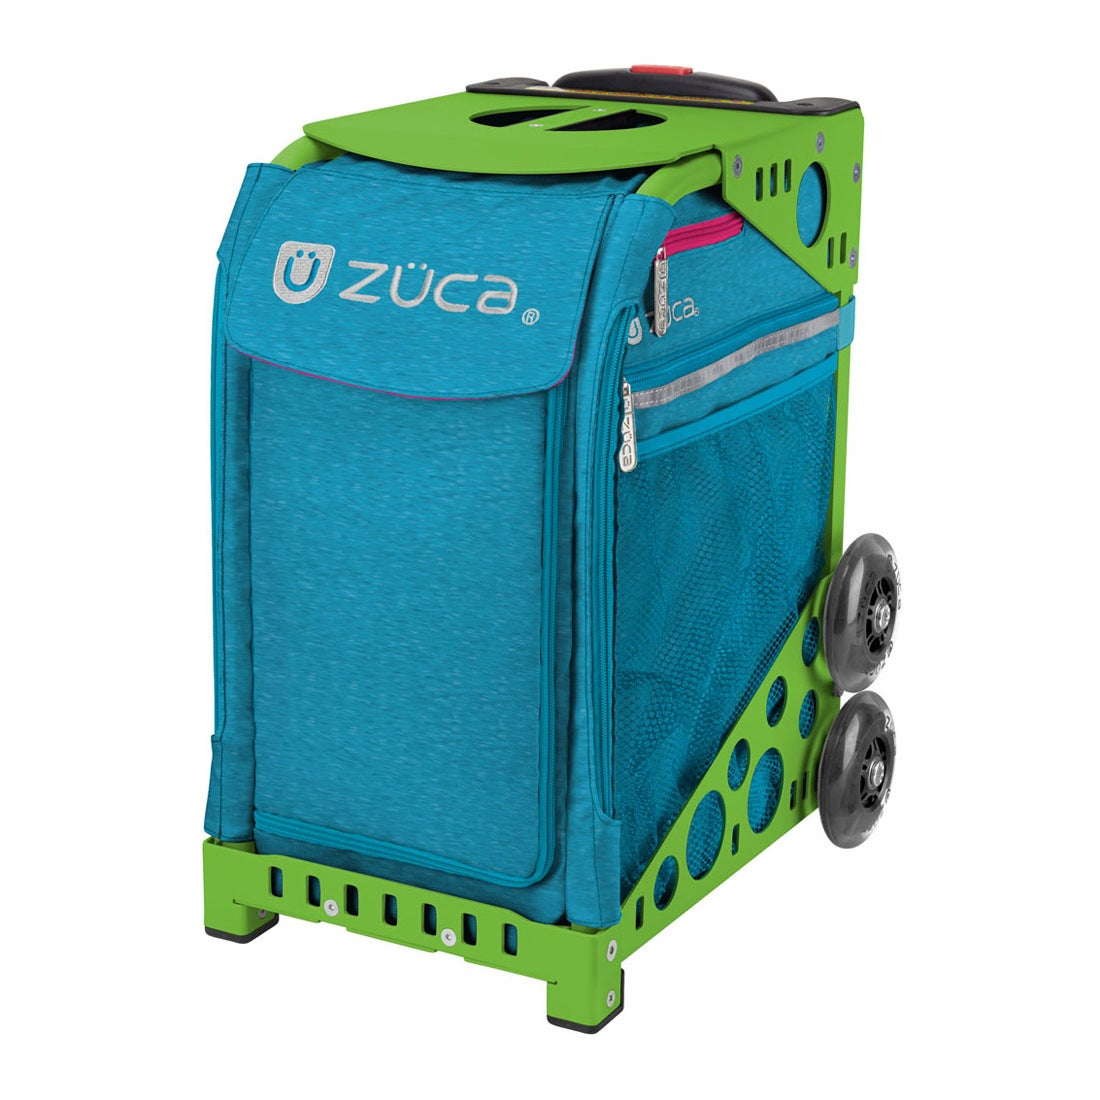 【SAC'S BAR】ZUCA Sport キャリーケース Beachy Blue 403 Green メンズ